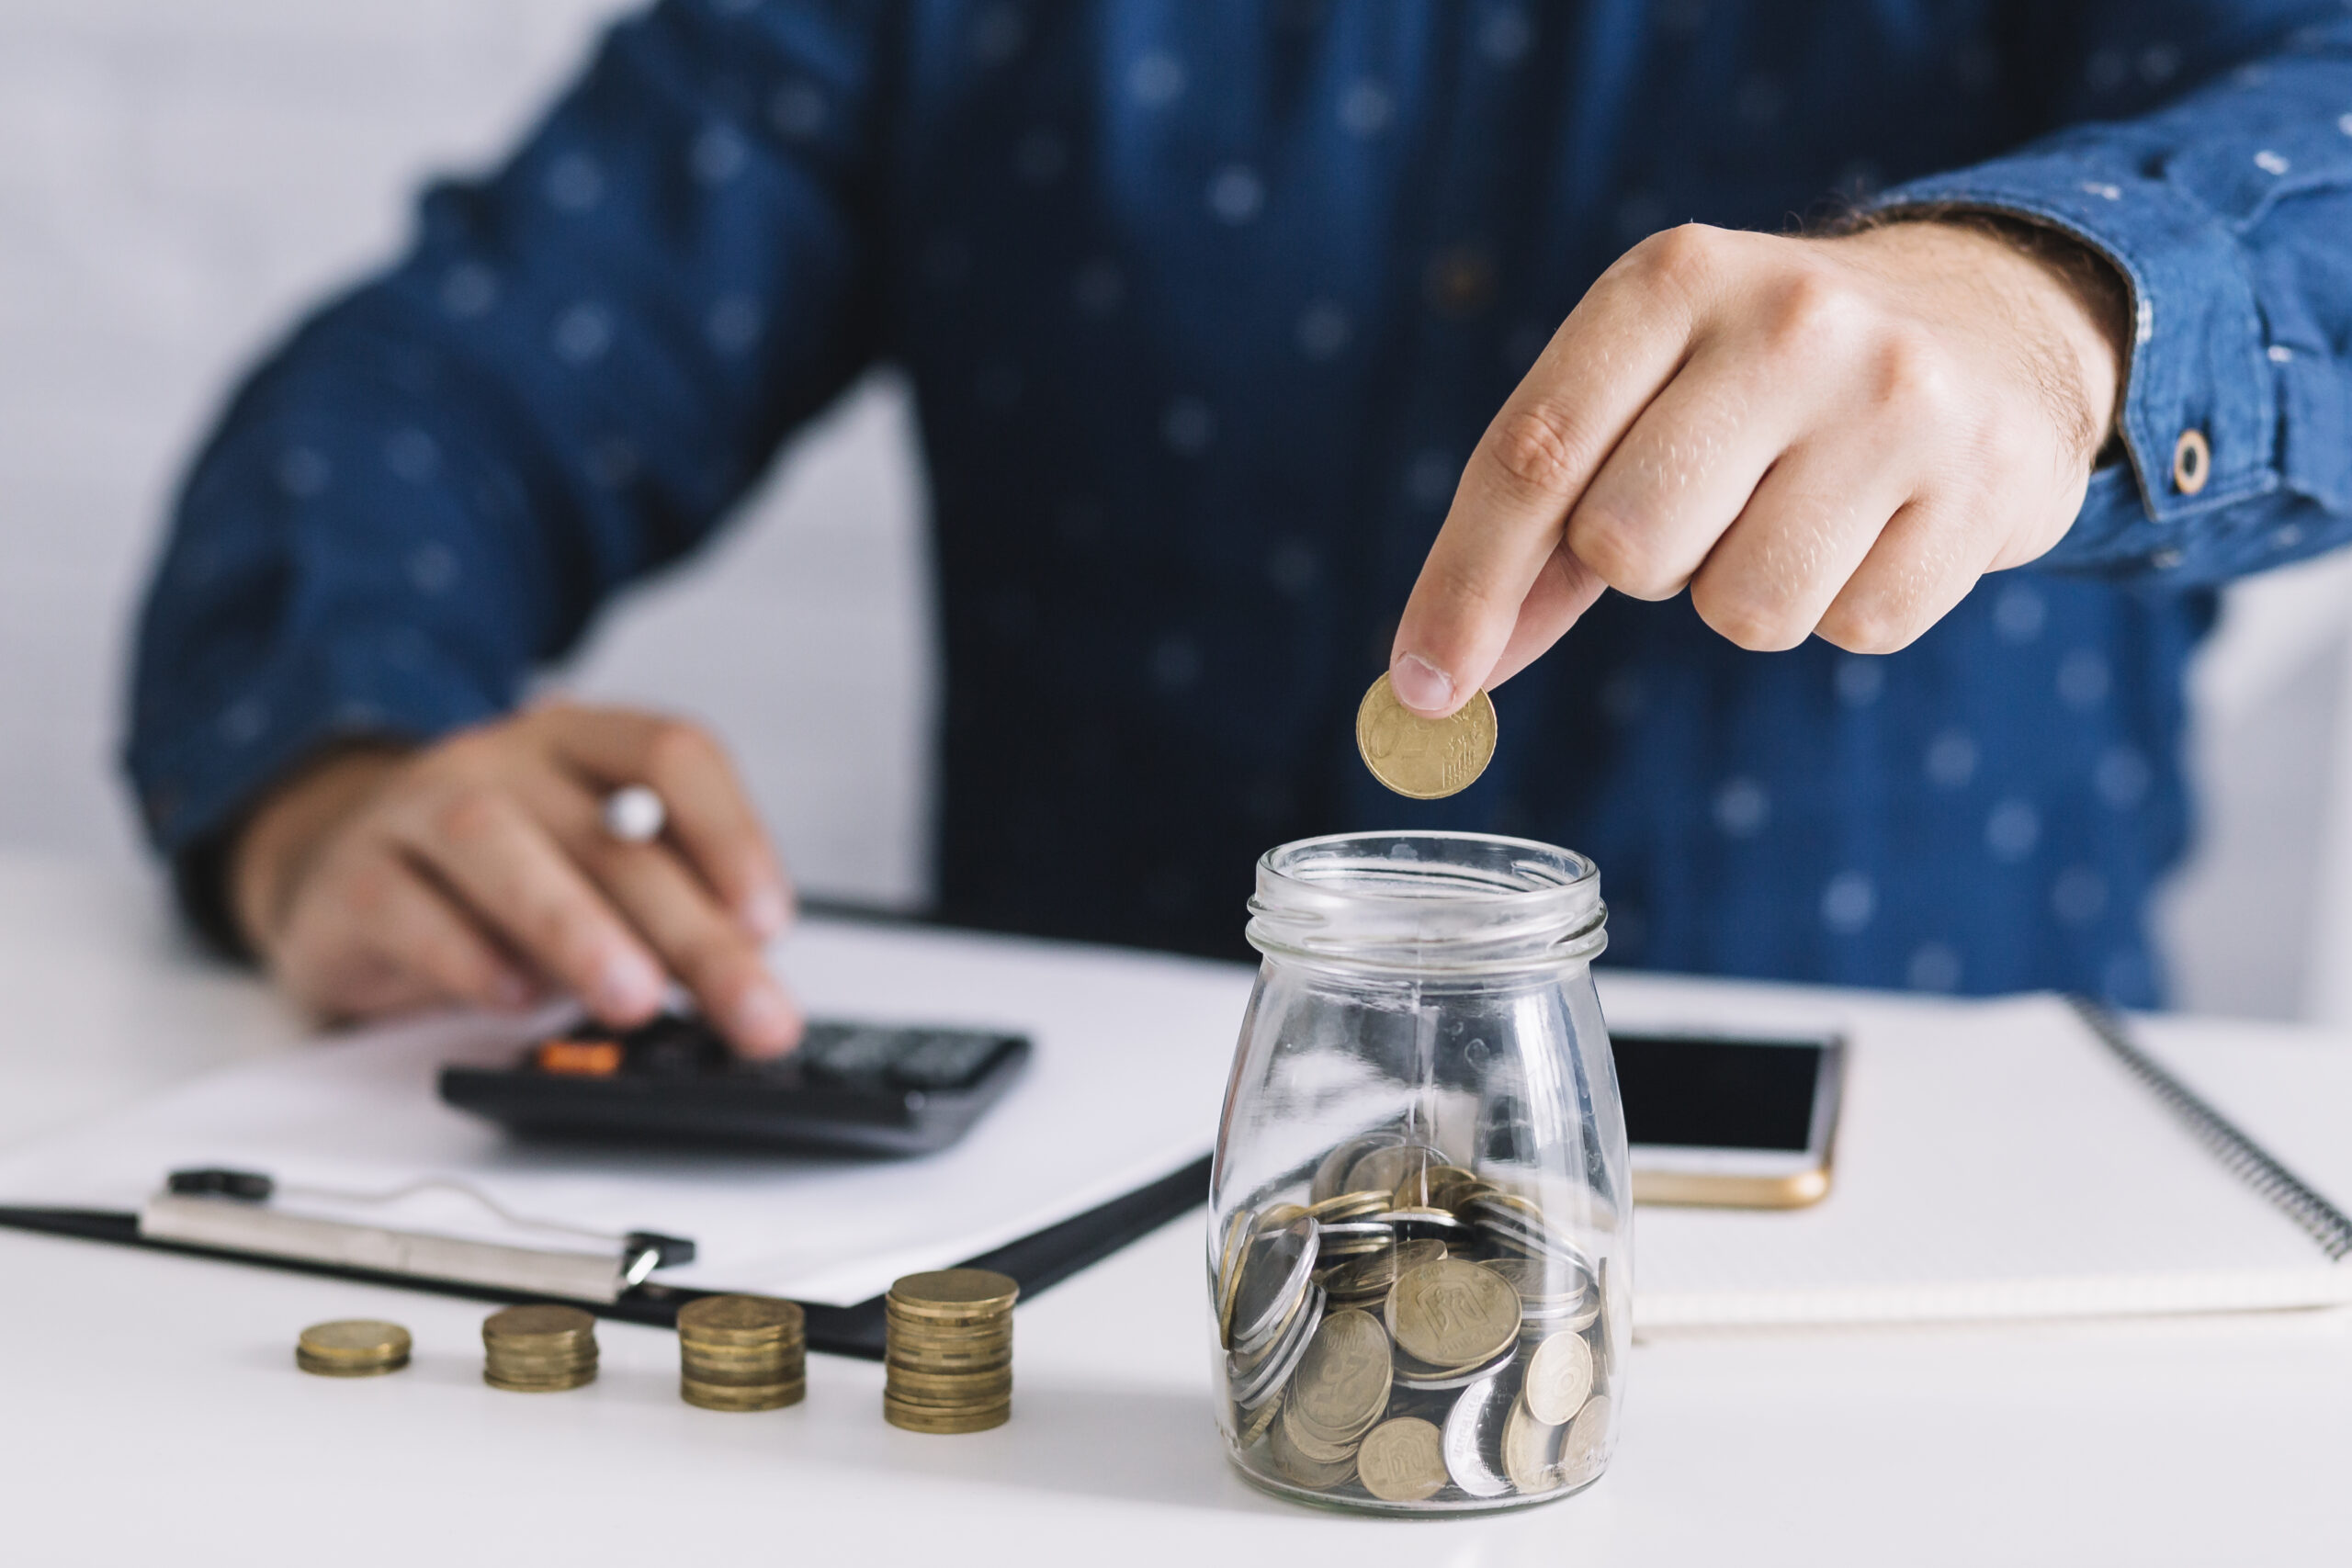 save to invest or to pay off debt?